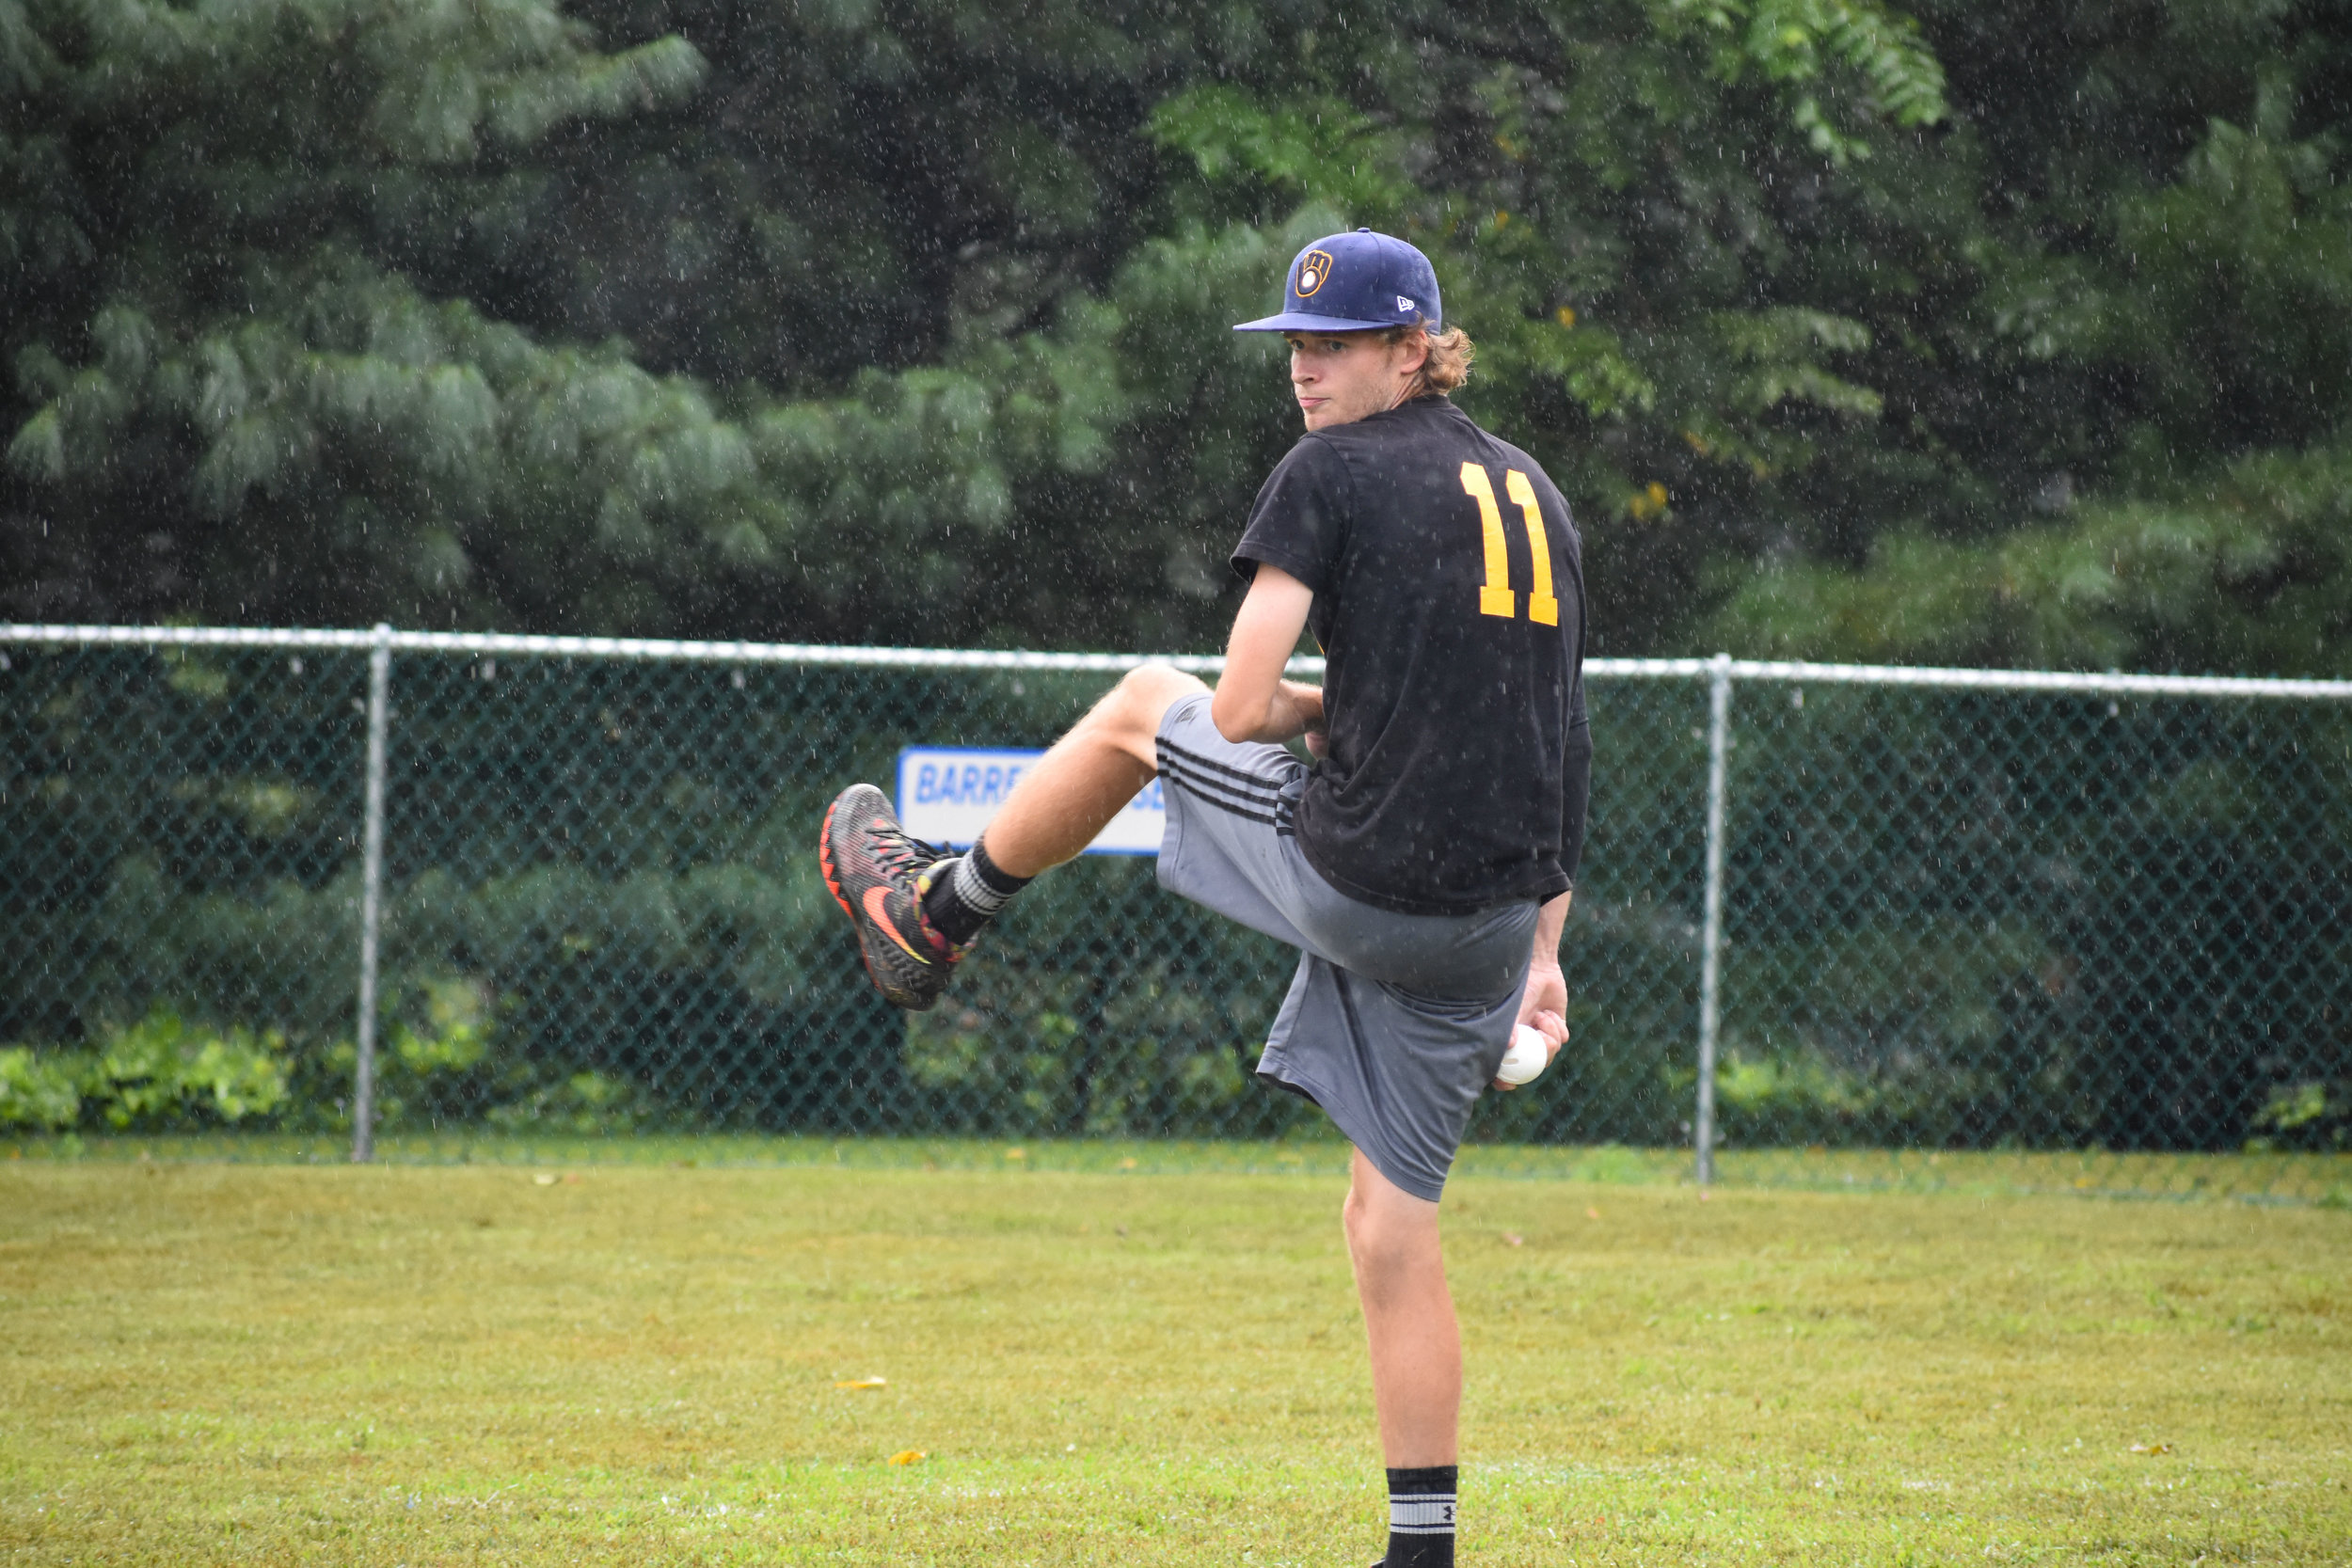 With a steady rain falling around him, Connor Young (My Name is ERL) goes into his patented windup.